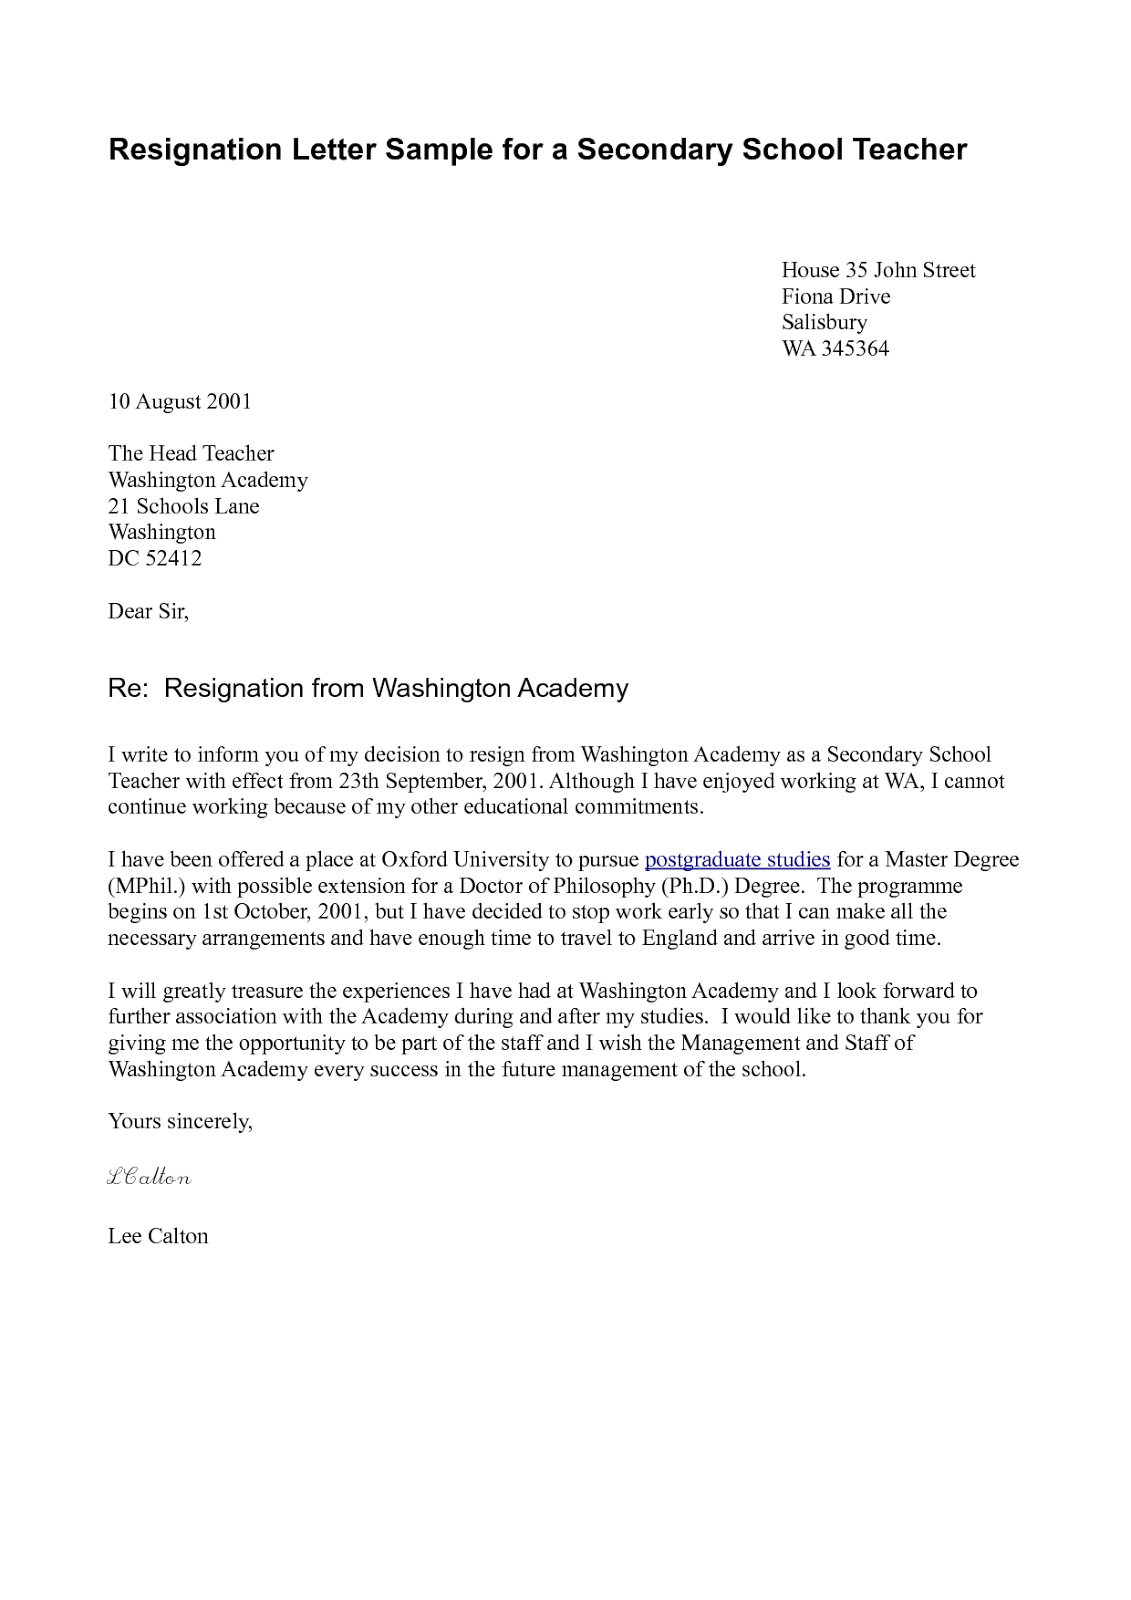 Corporate Resignation Letter Format – Resignation Letters Template